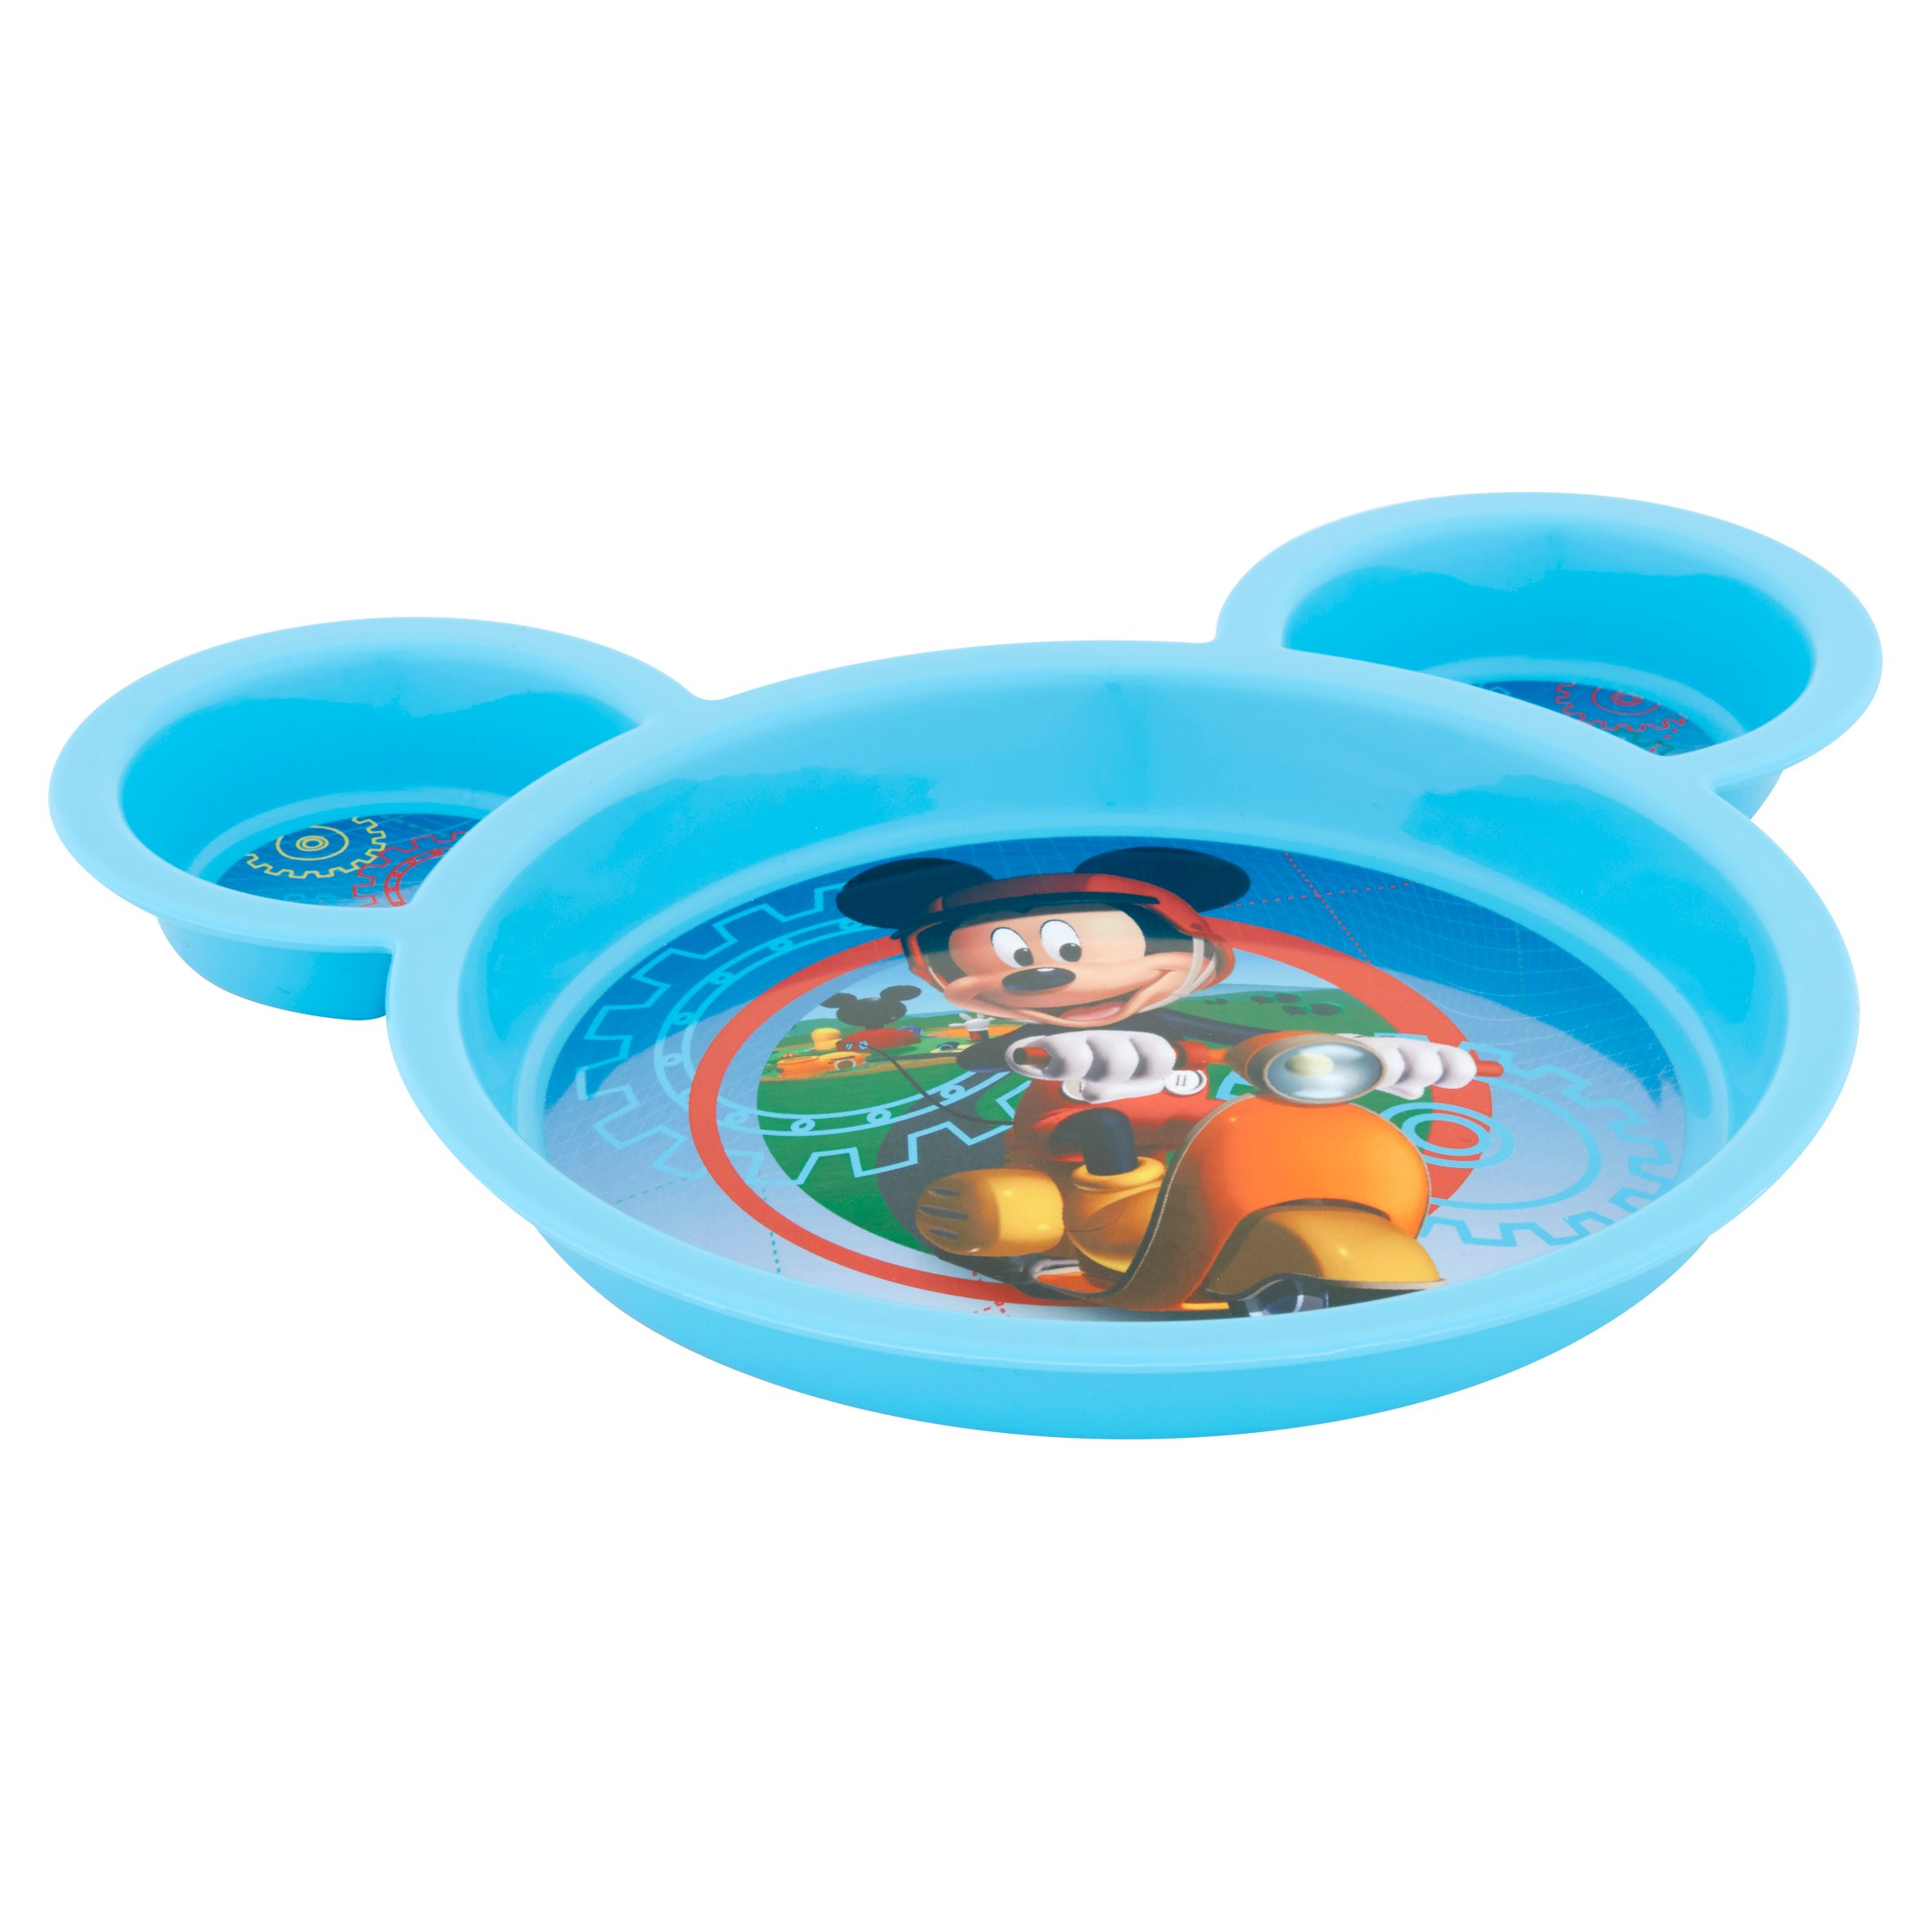 The First Years Disney Mickey Mouse Clubhouse Plate - Walmart.com